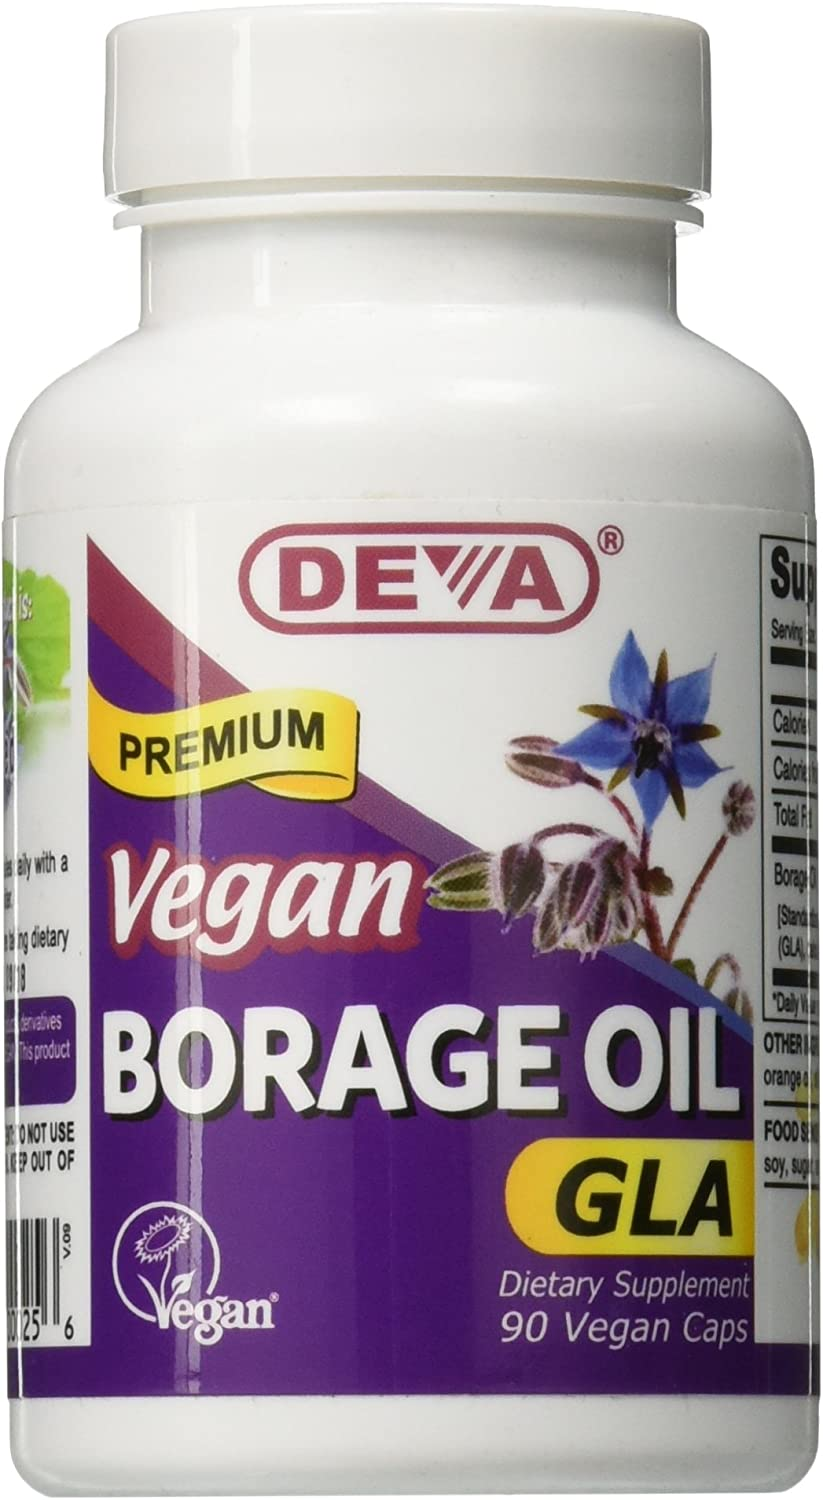 DEVA Vegan Vitamins Vegan Borage Oil 500 mg Vcaps, 90-Count Bottle